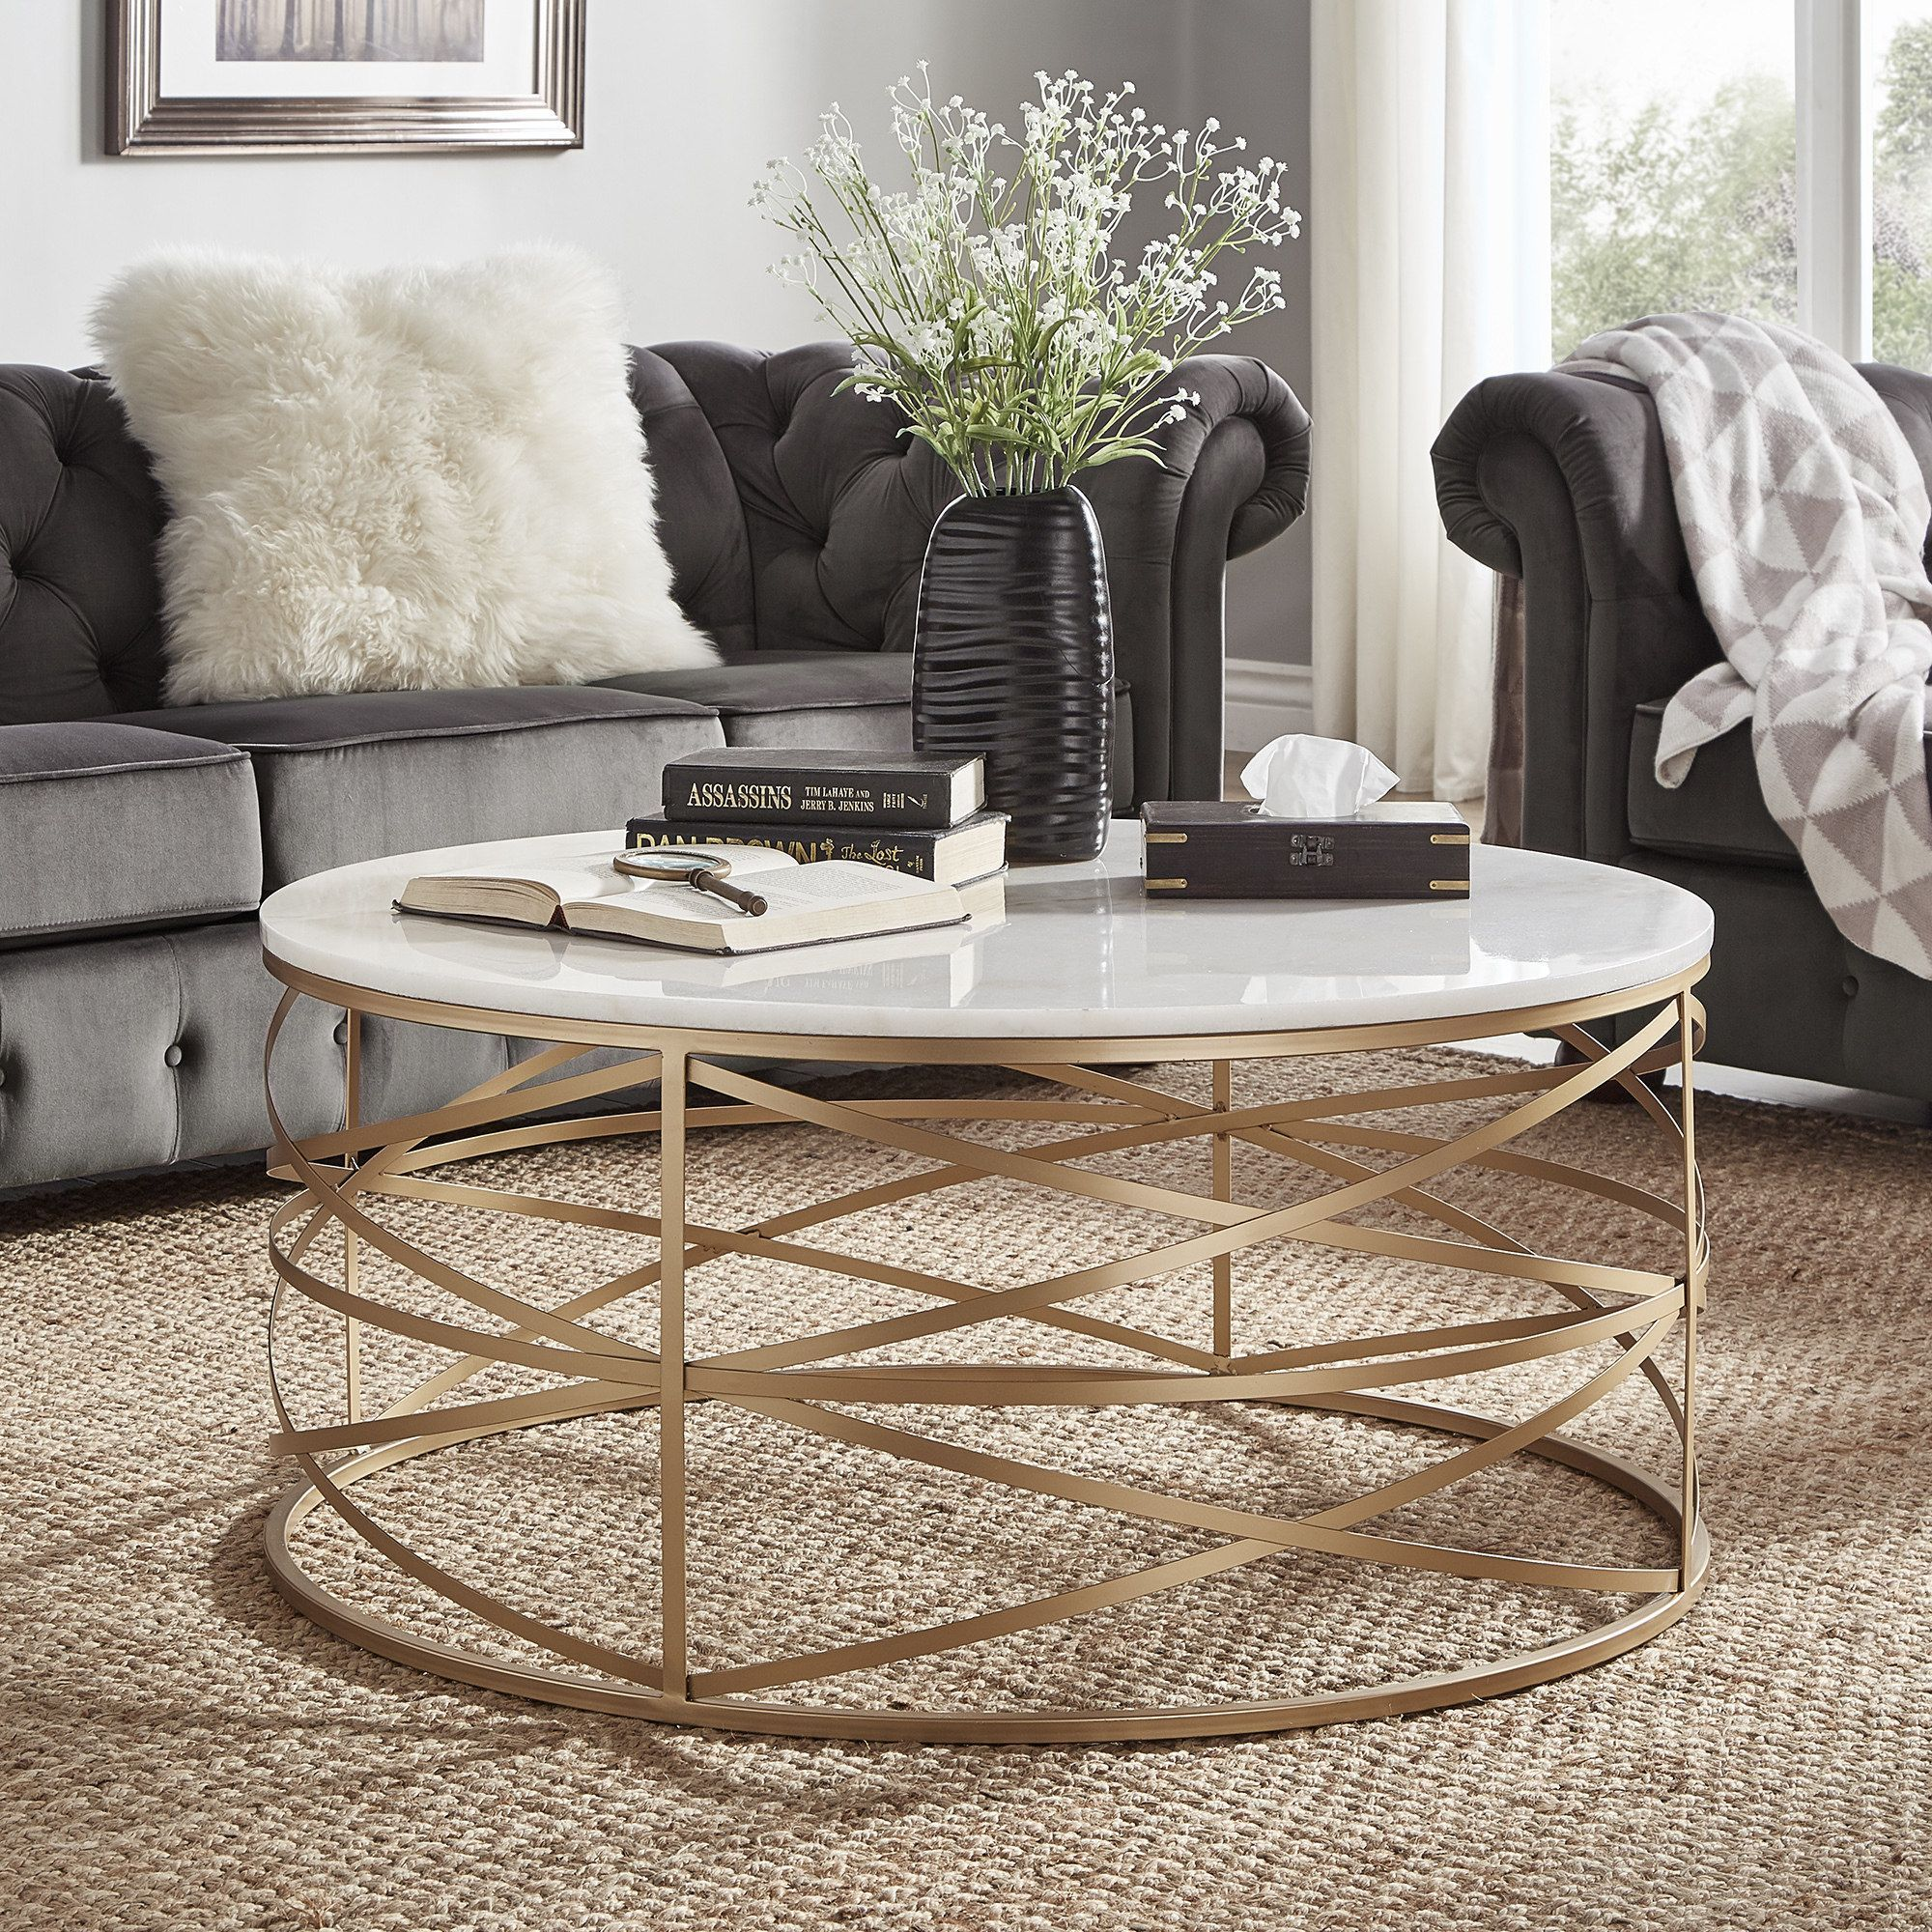 paisley round gold accent tables with marble tops inspire bold end table set piece wrought iron coffee legs space saving kitchen wood pedestal basket drawers mission style sofa